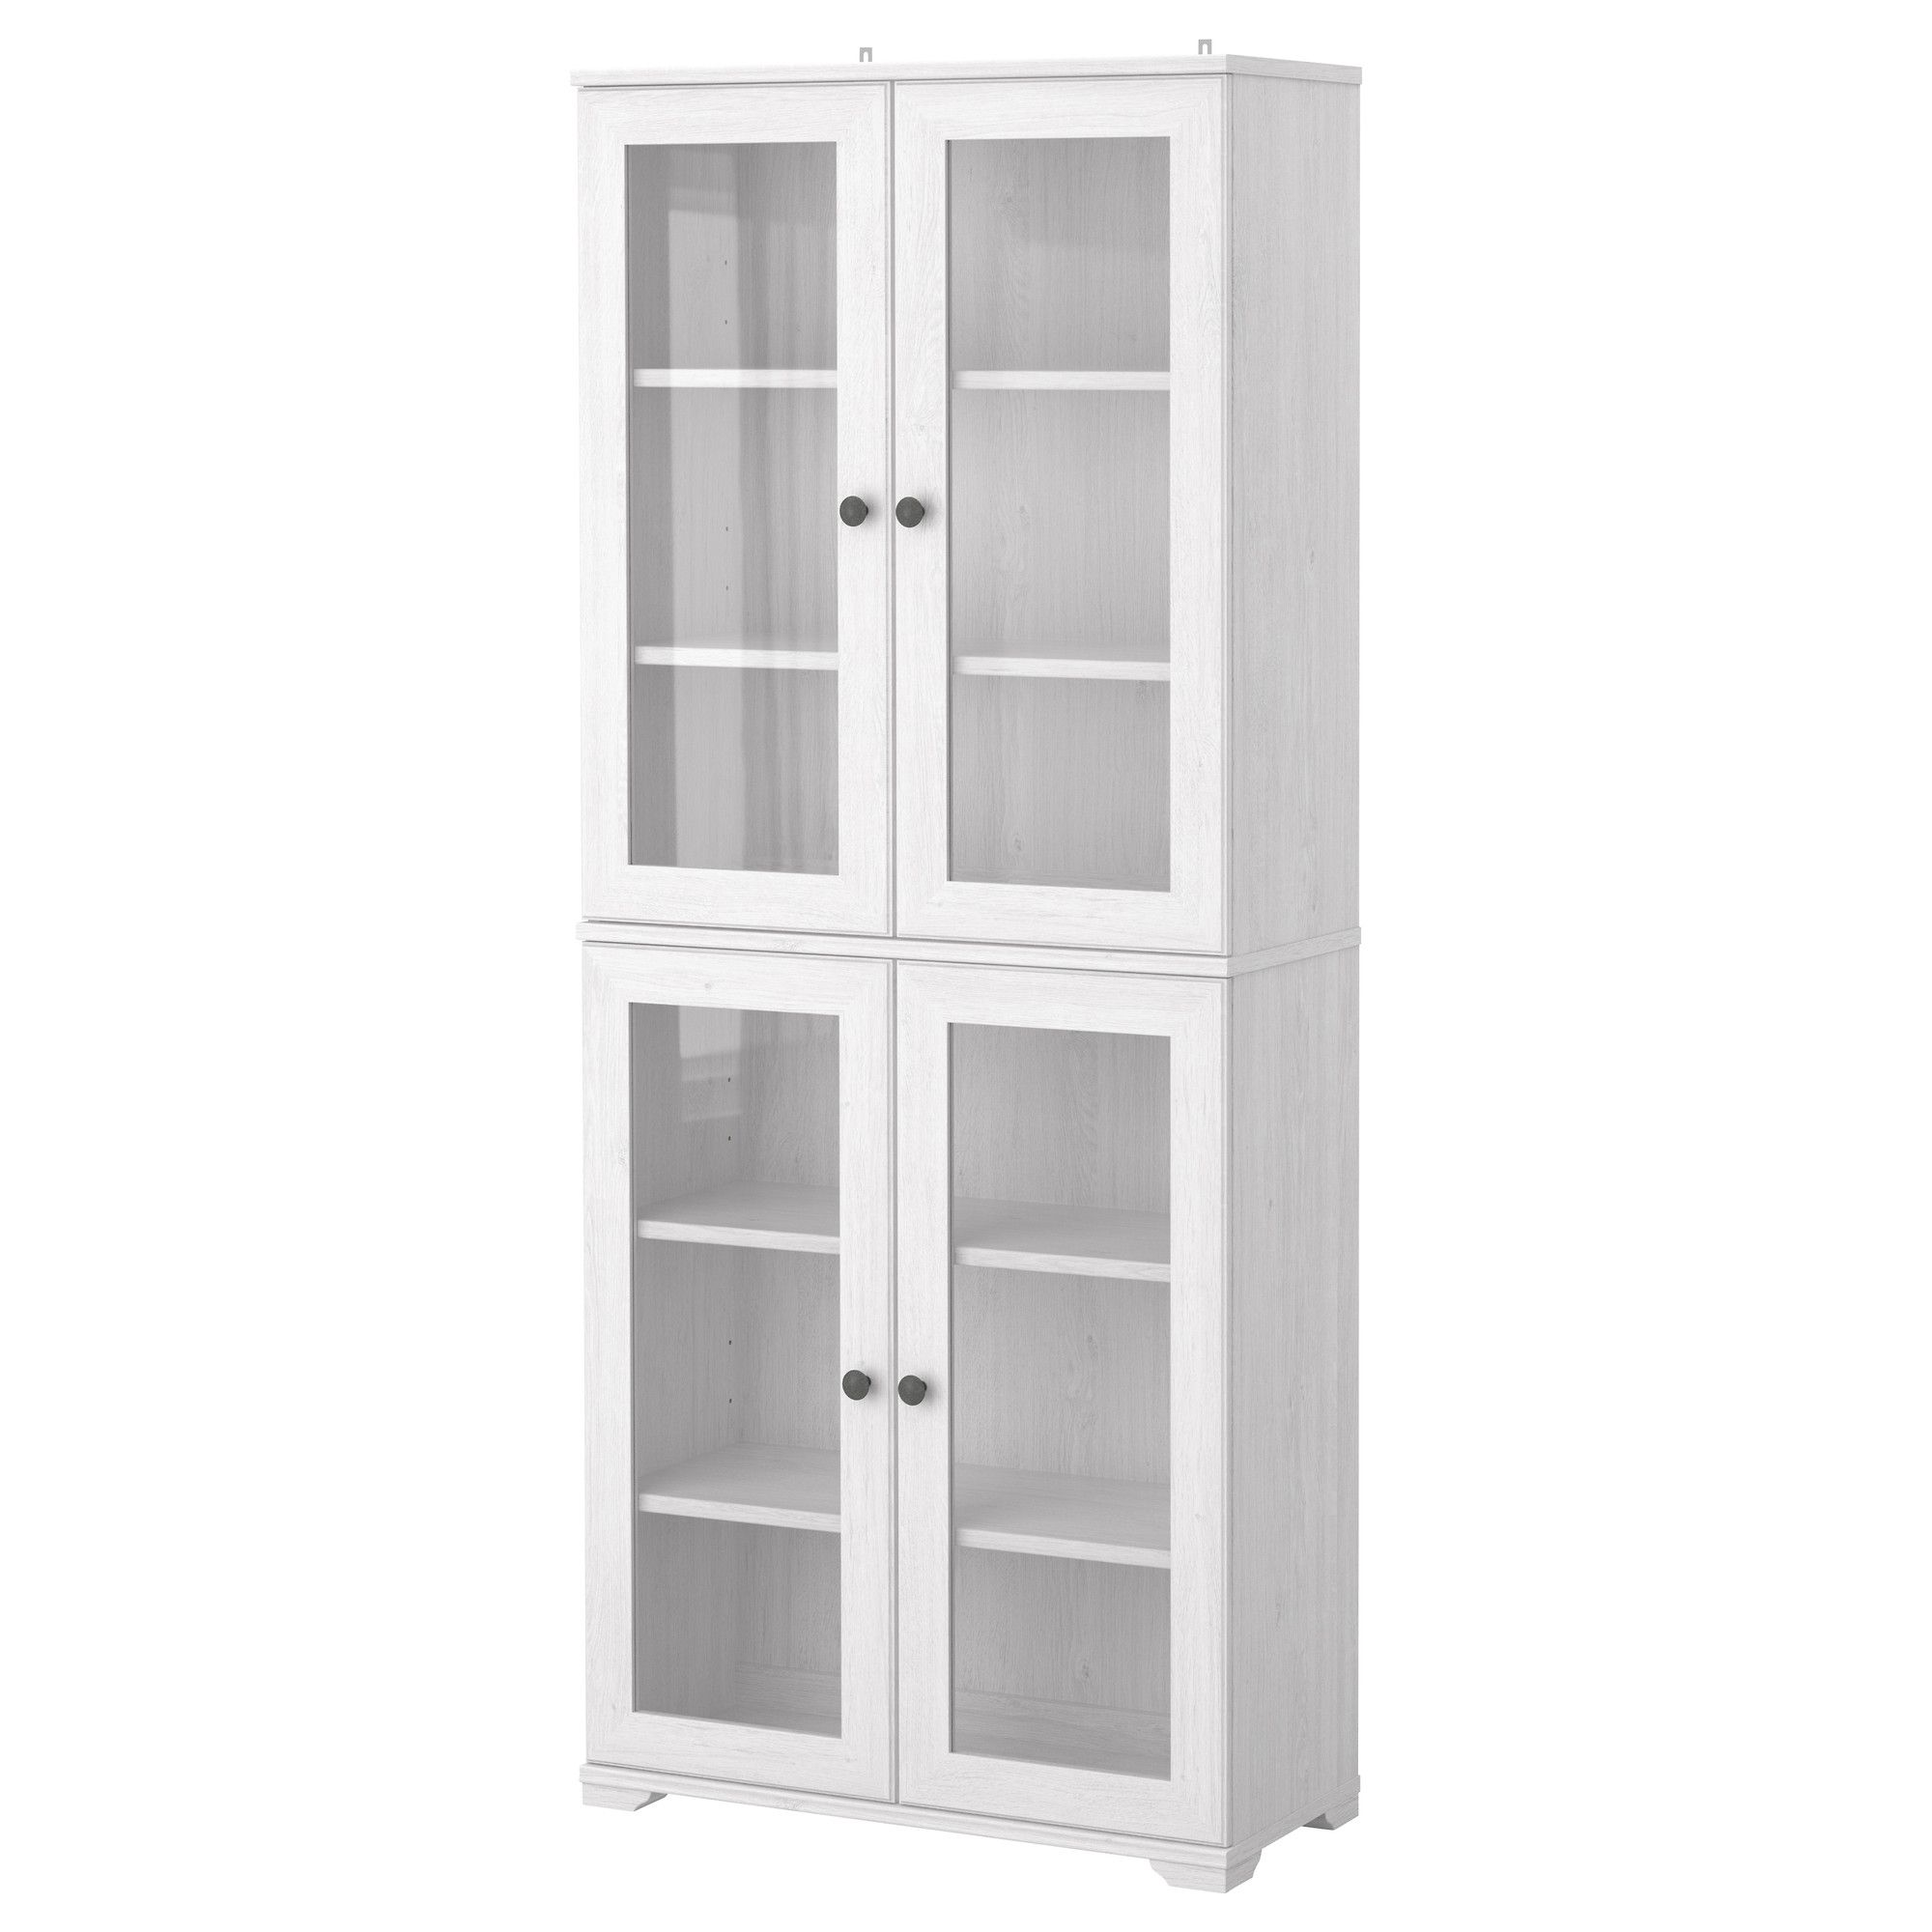 Borgsj Glass Door Cabinet White Ikea 135 As Pictured Need  # Meuble Ikea Case